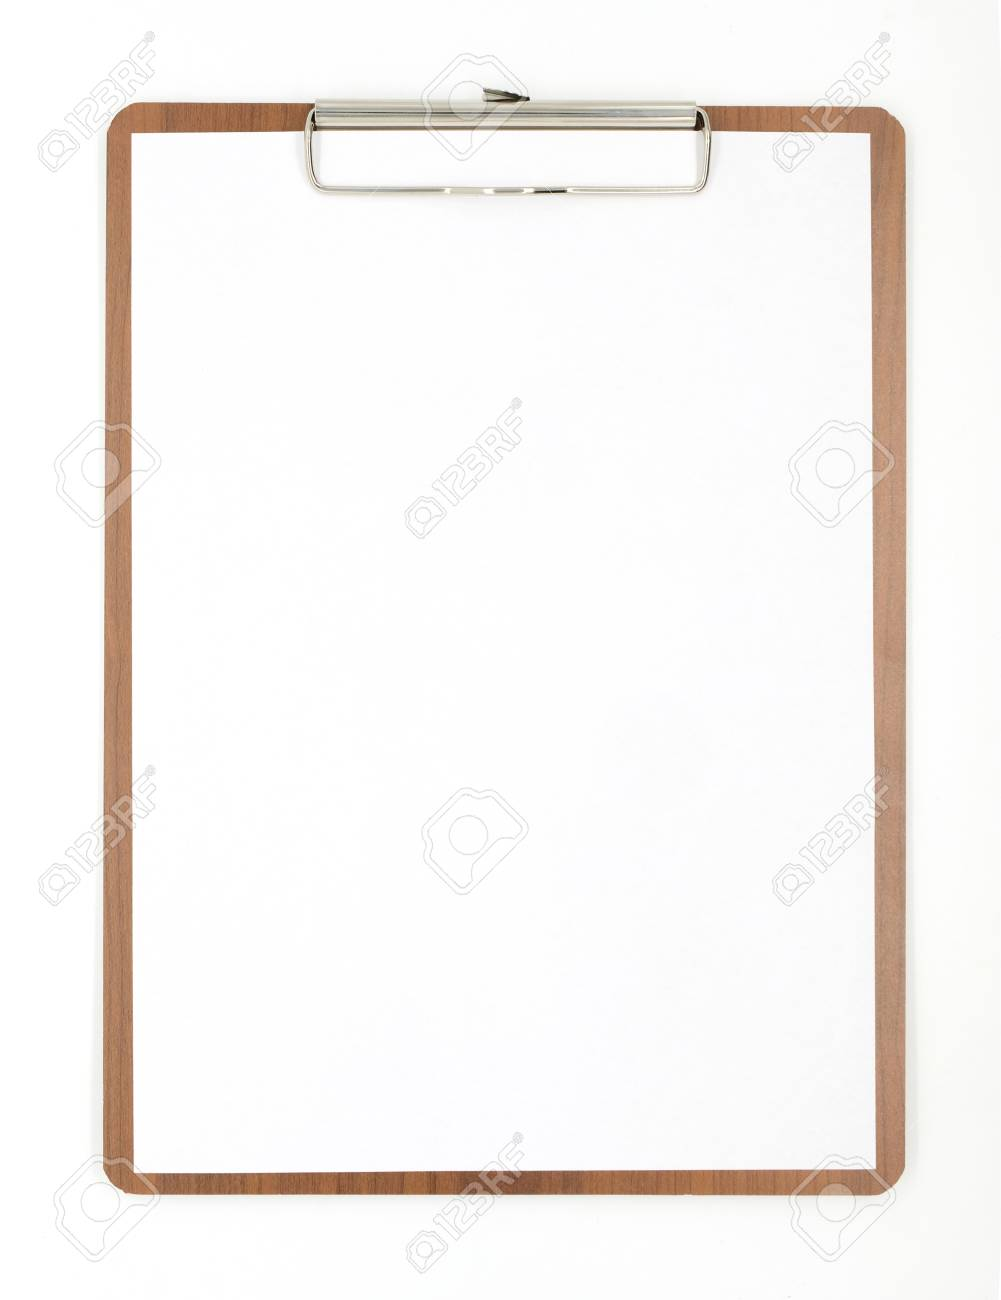 89486962-a-wooden-clipboard-with-a-blank-piece-of-paper.jpg